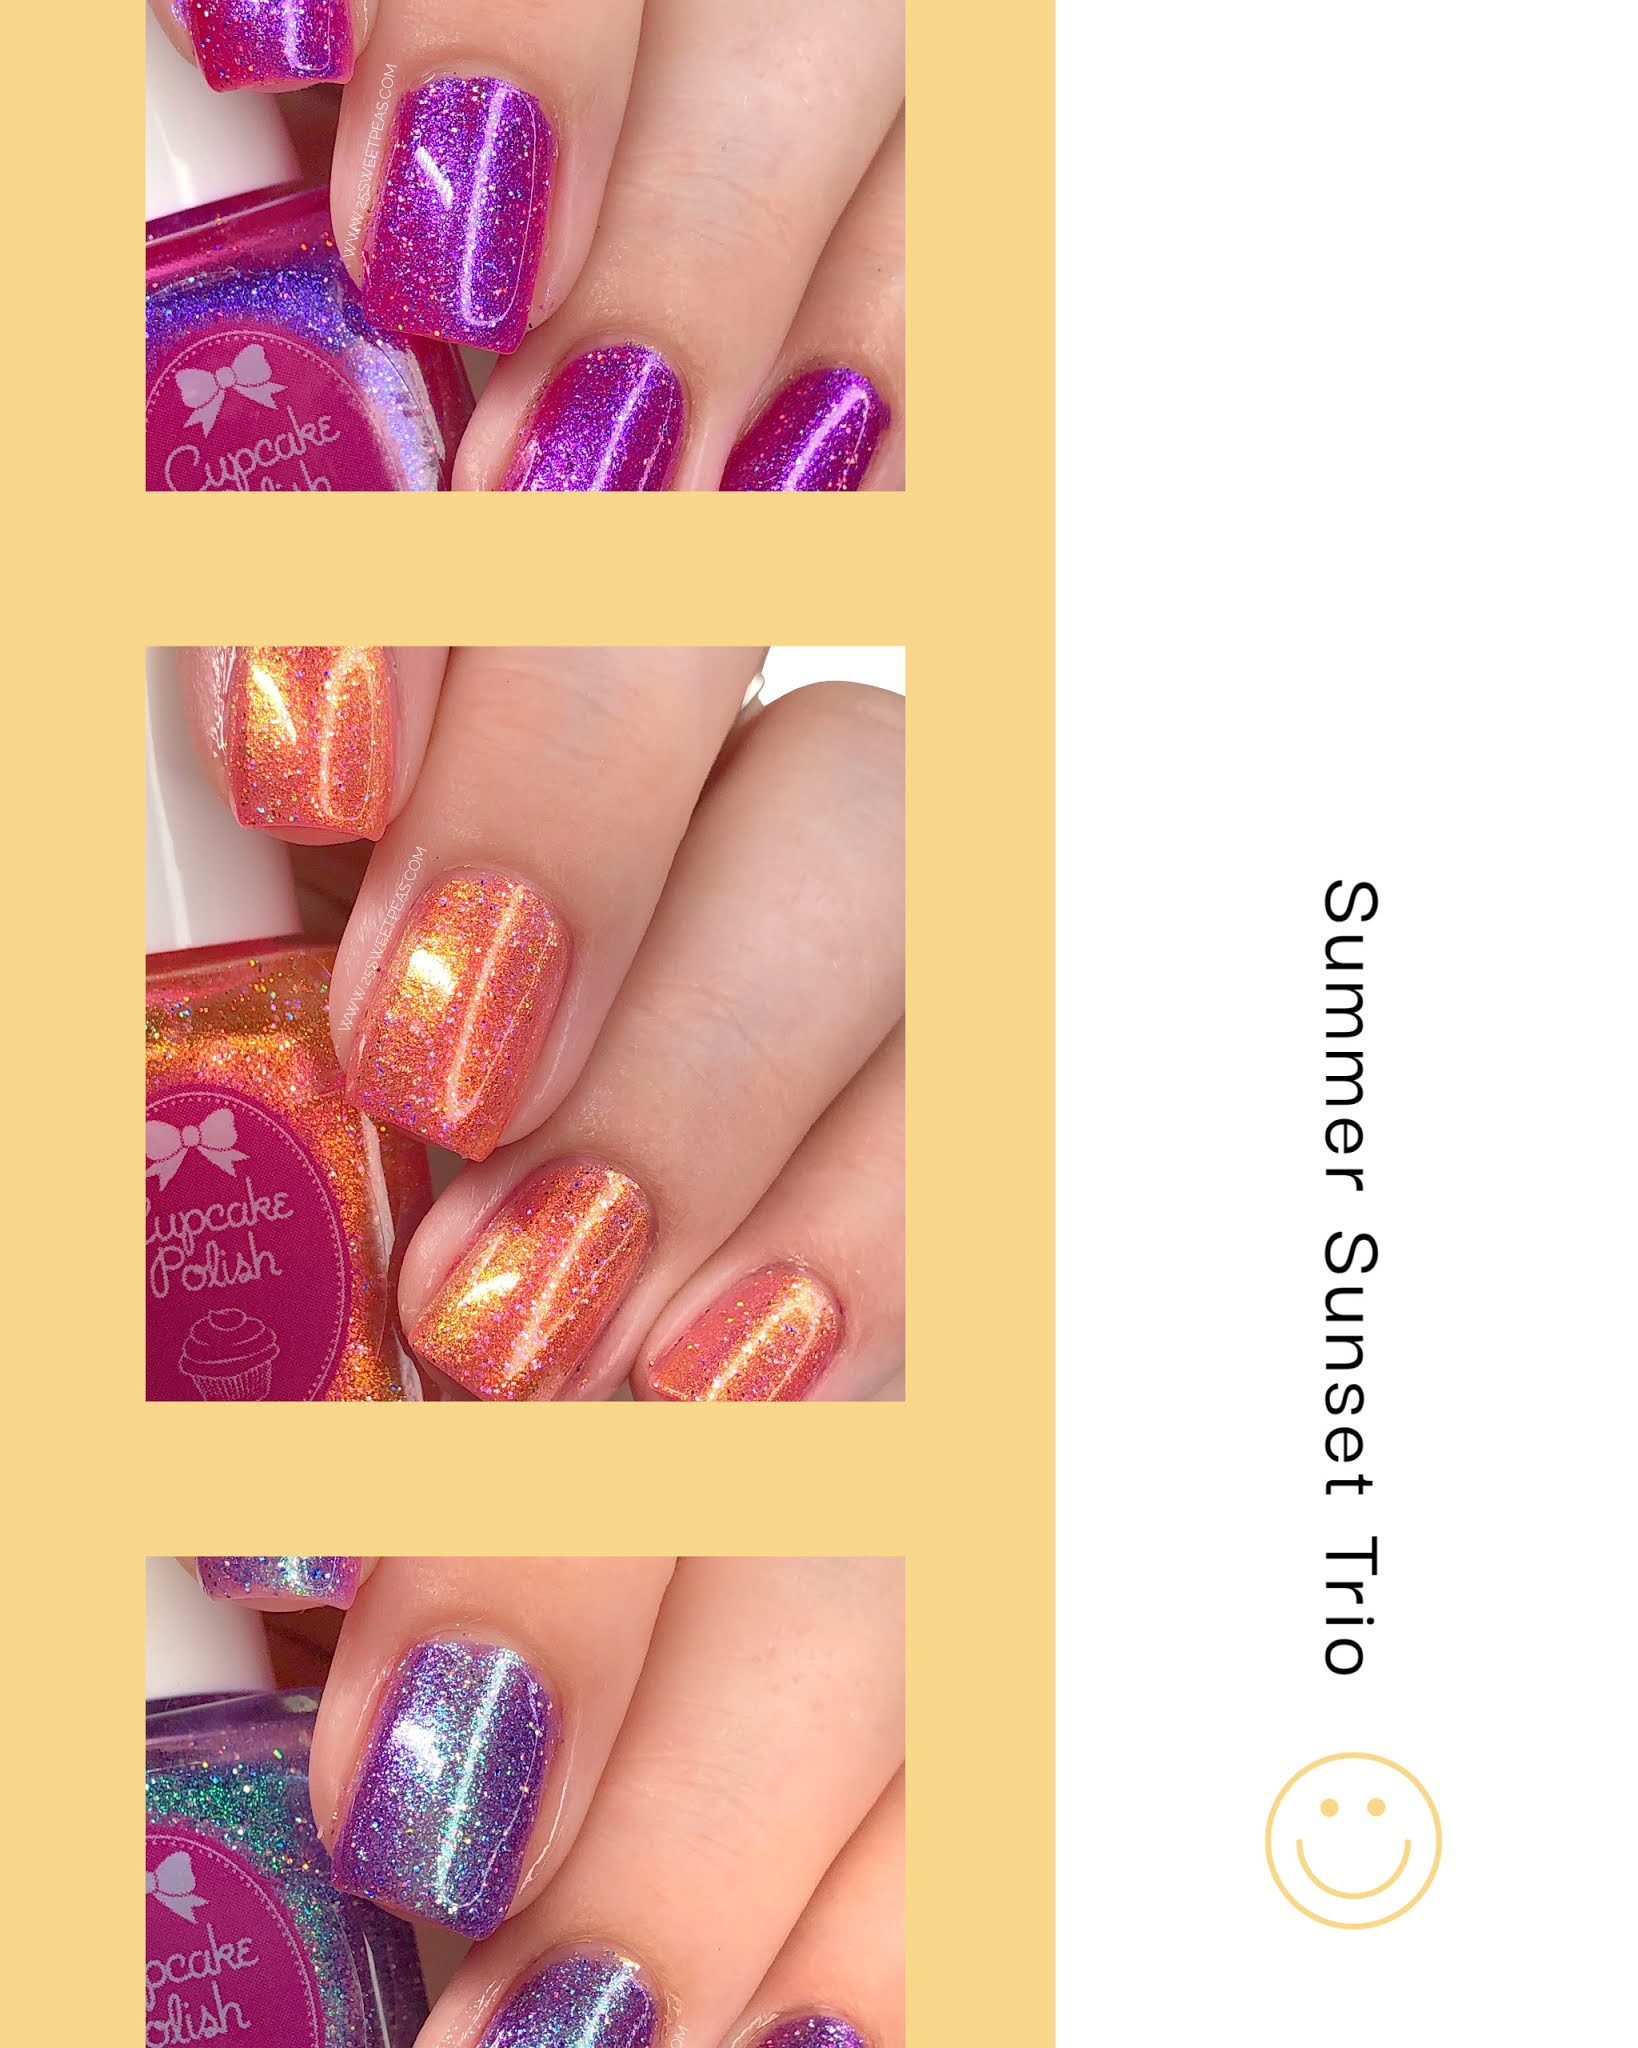 Cupcake Polish Summer Sunset Trio